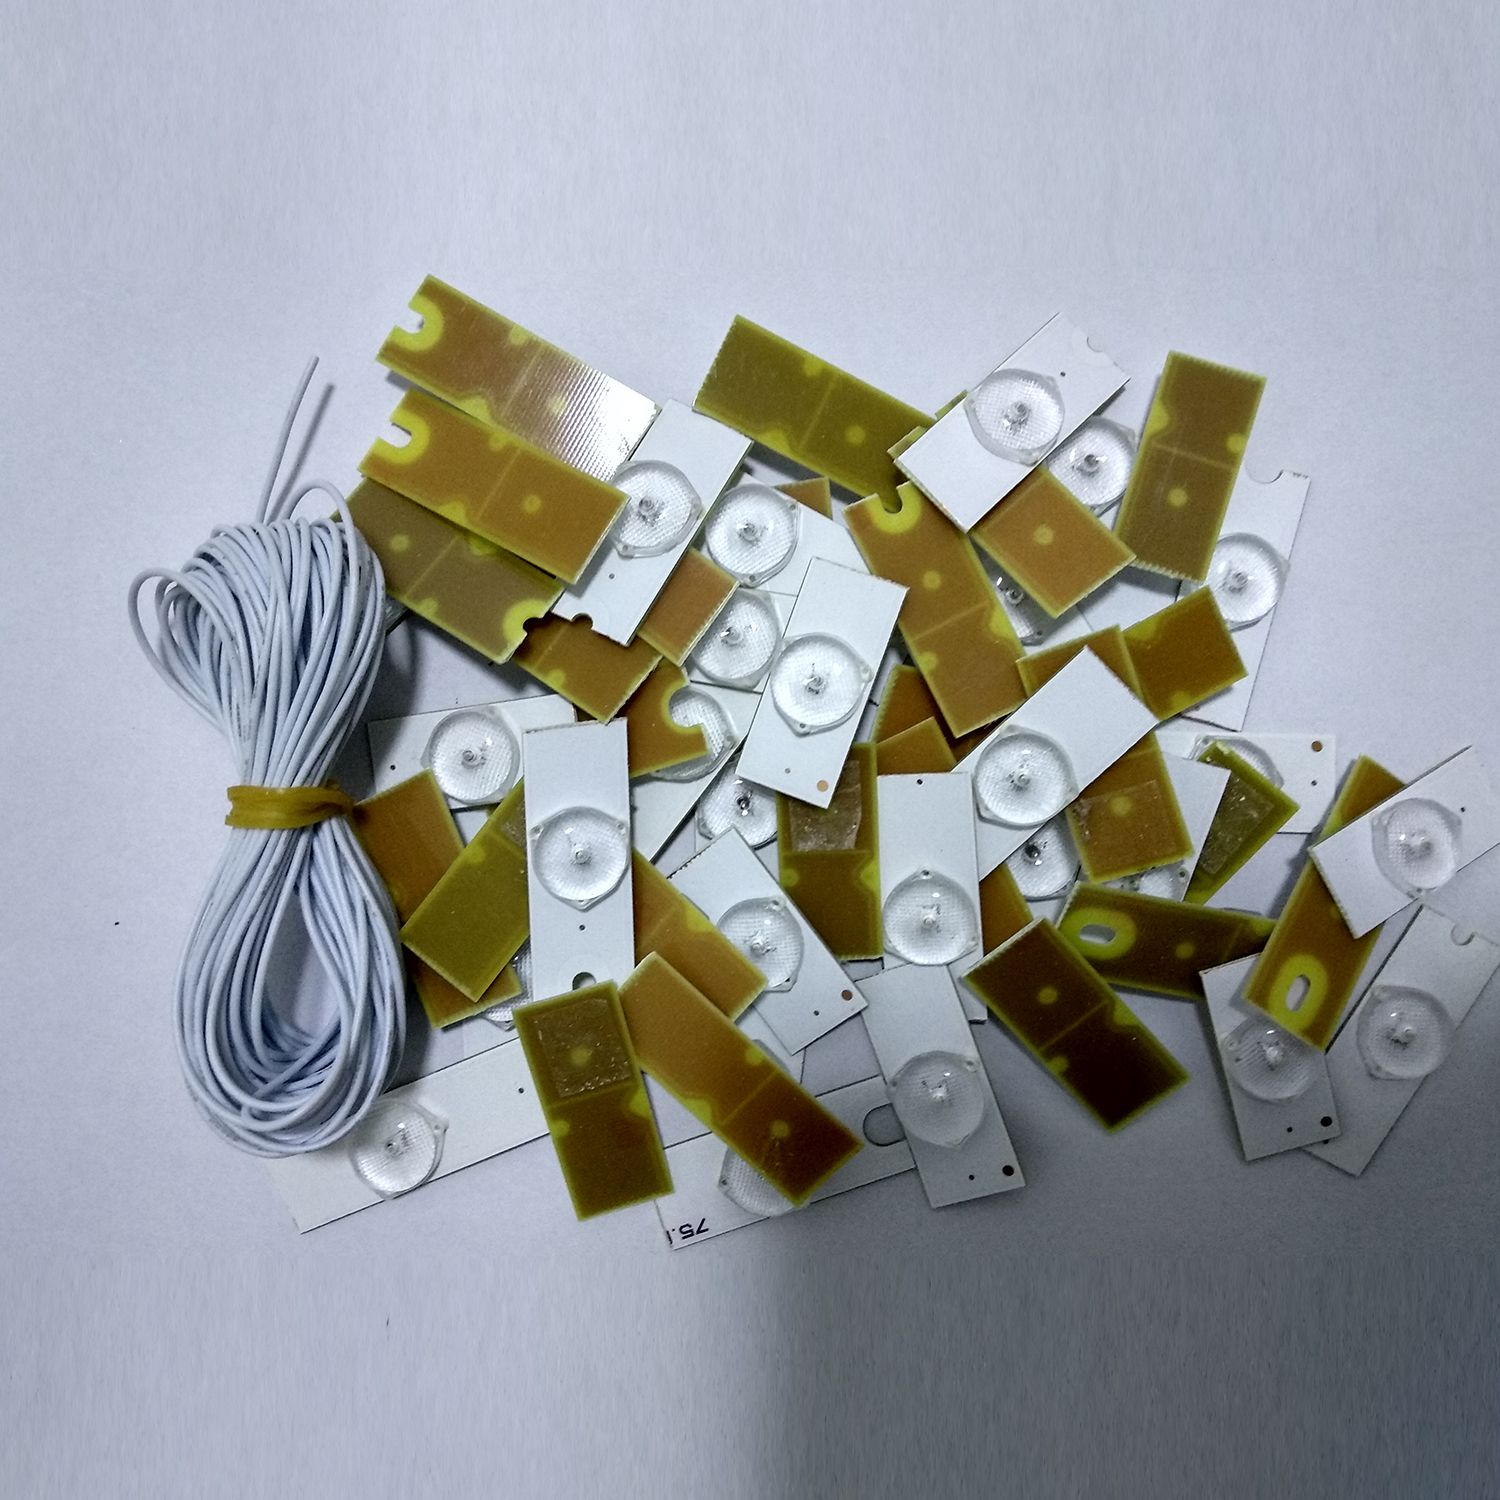 3V SMD Lamp Beads With Optical Lens Fliter For 32-65 Inch LED TV Repair(20pcs 3V With Cable)